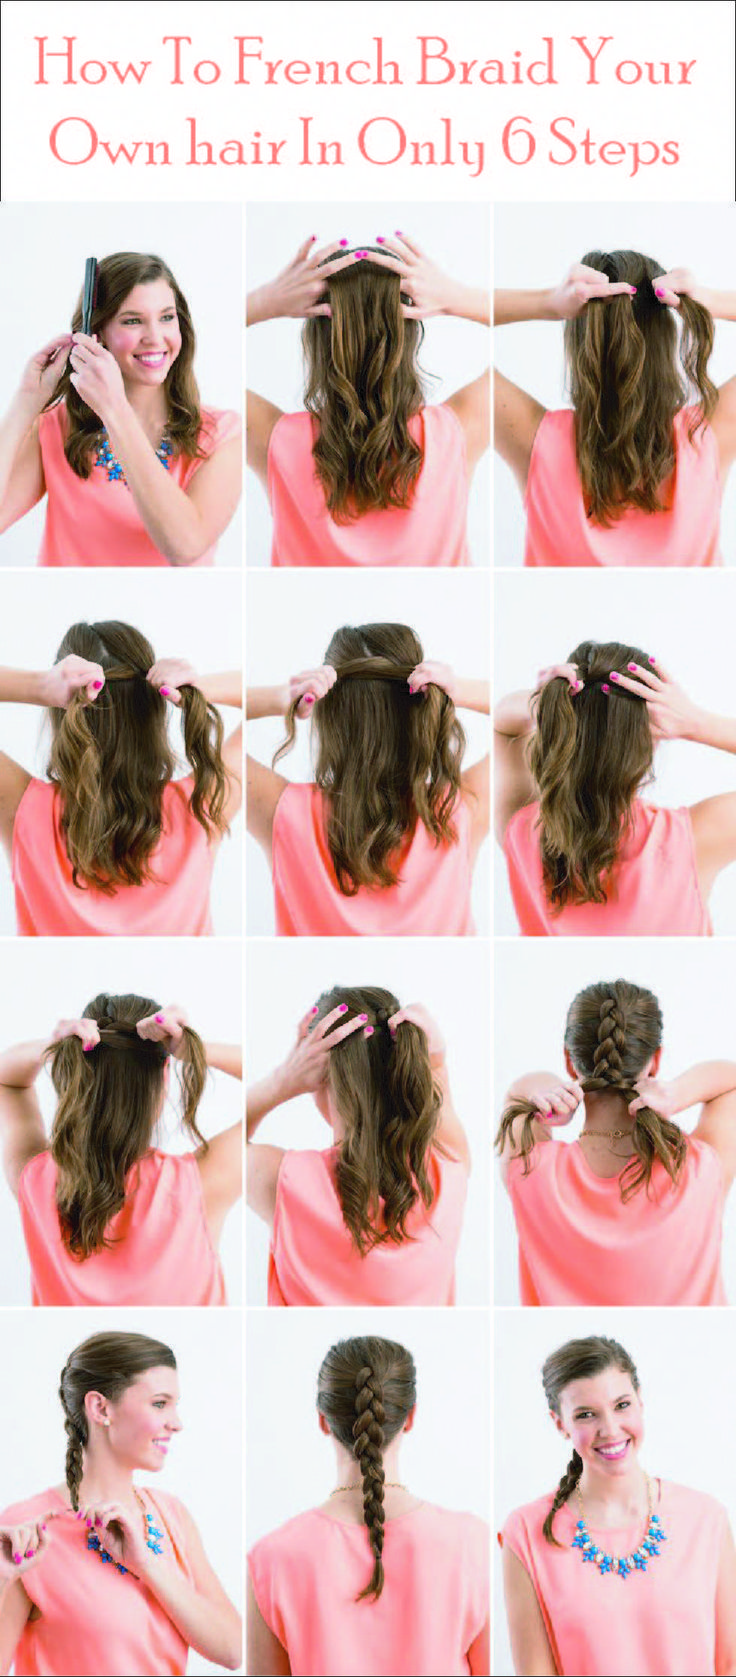 Easy Tutorial Ever To French Braid Your Hair For A Glamorous Look Design Model E In 2020 Braided Hairstyles Easy French Braid Short Hair Braids For Short Hair